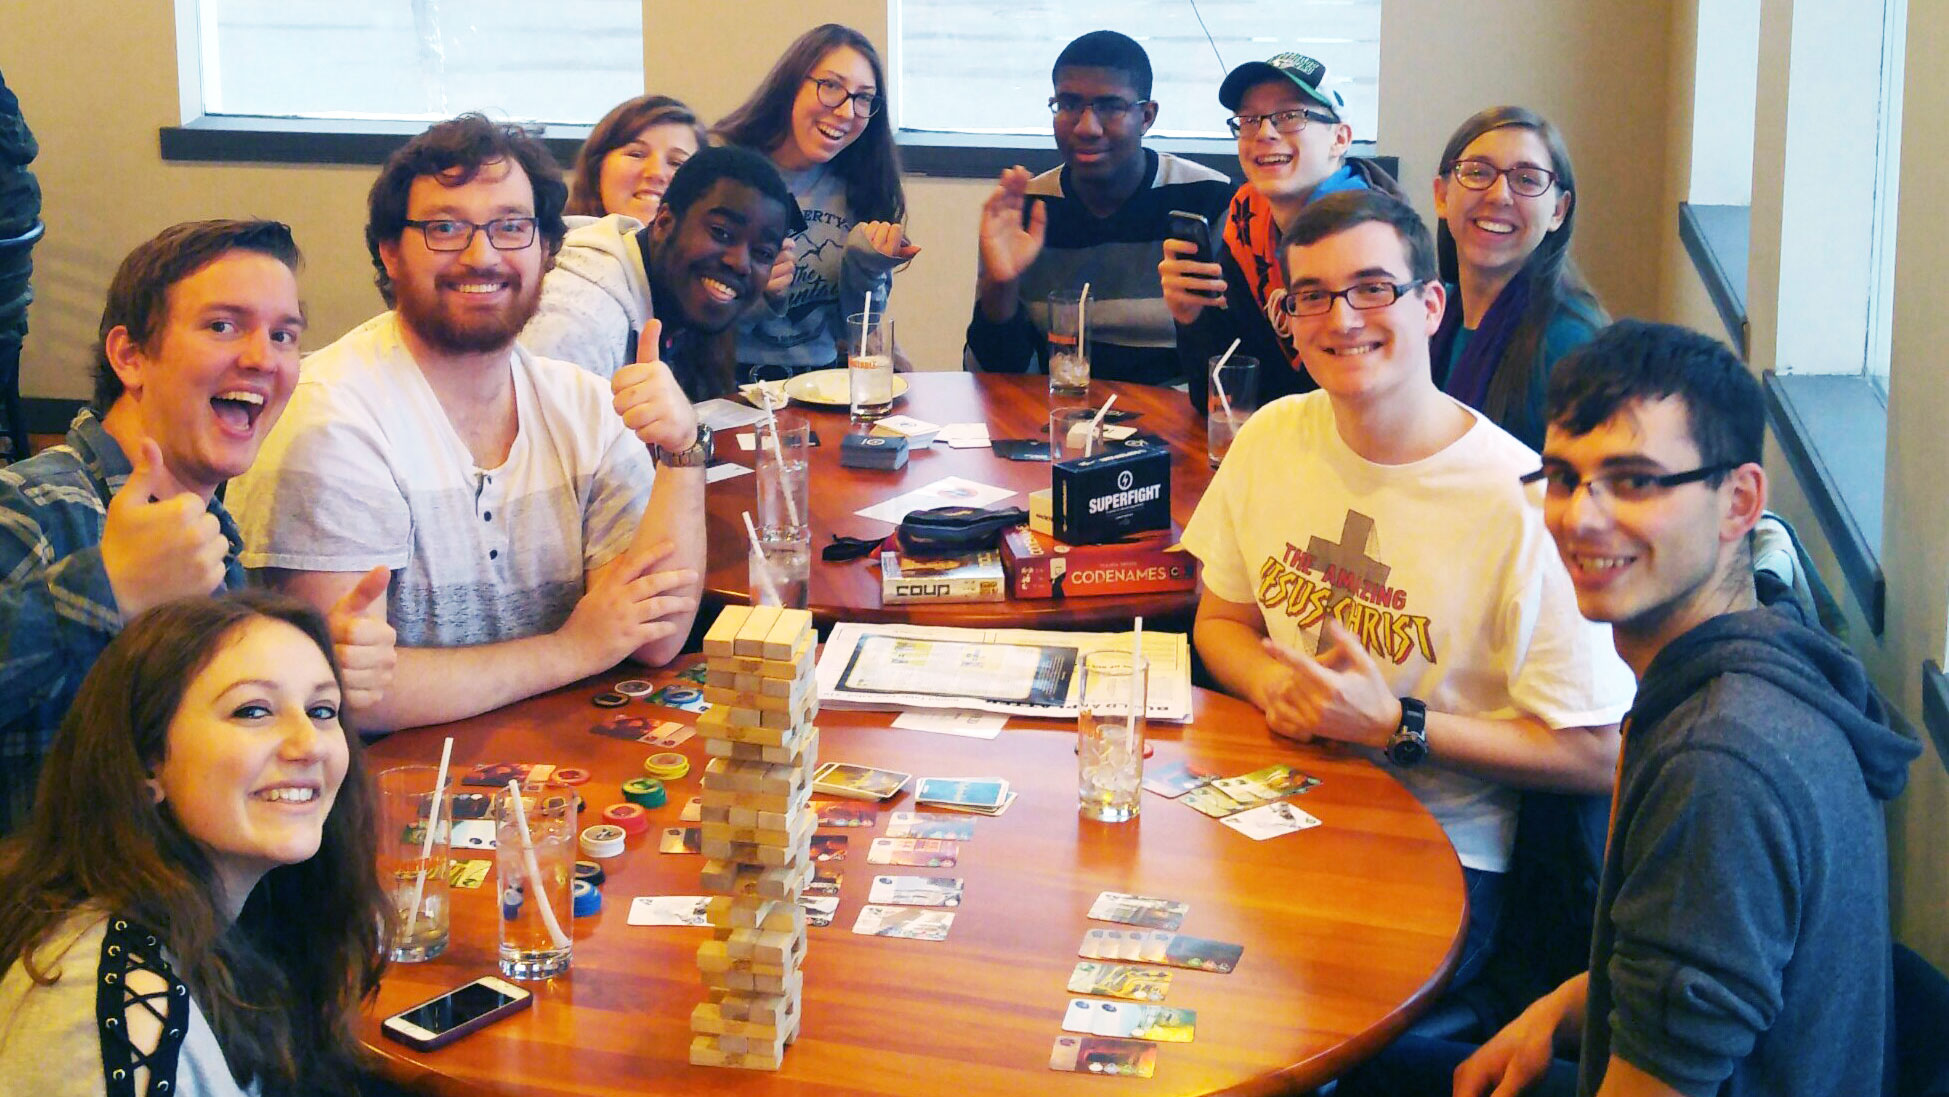 University of Lethbridge students at a game night